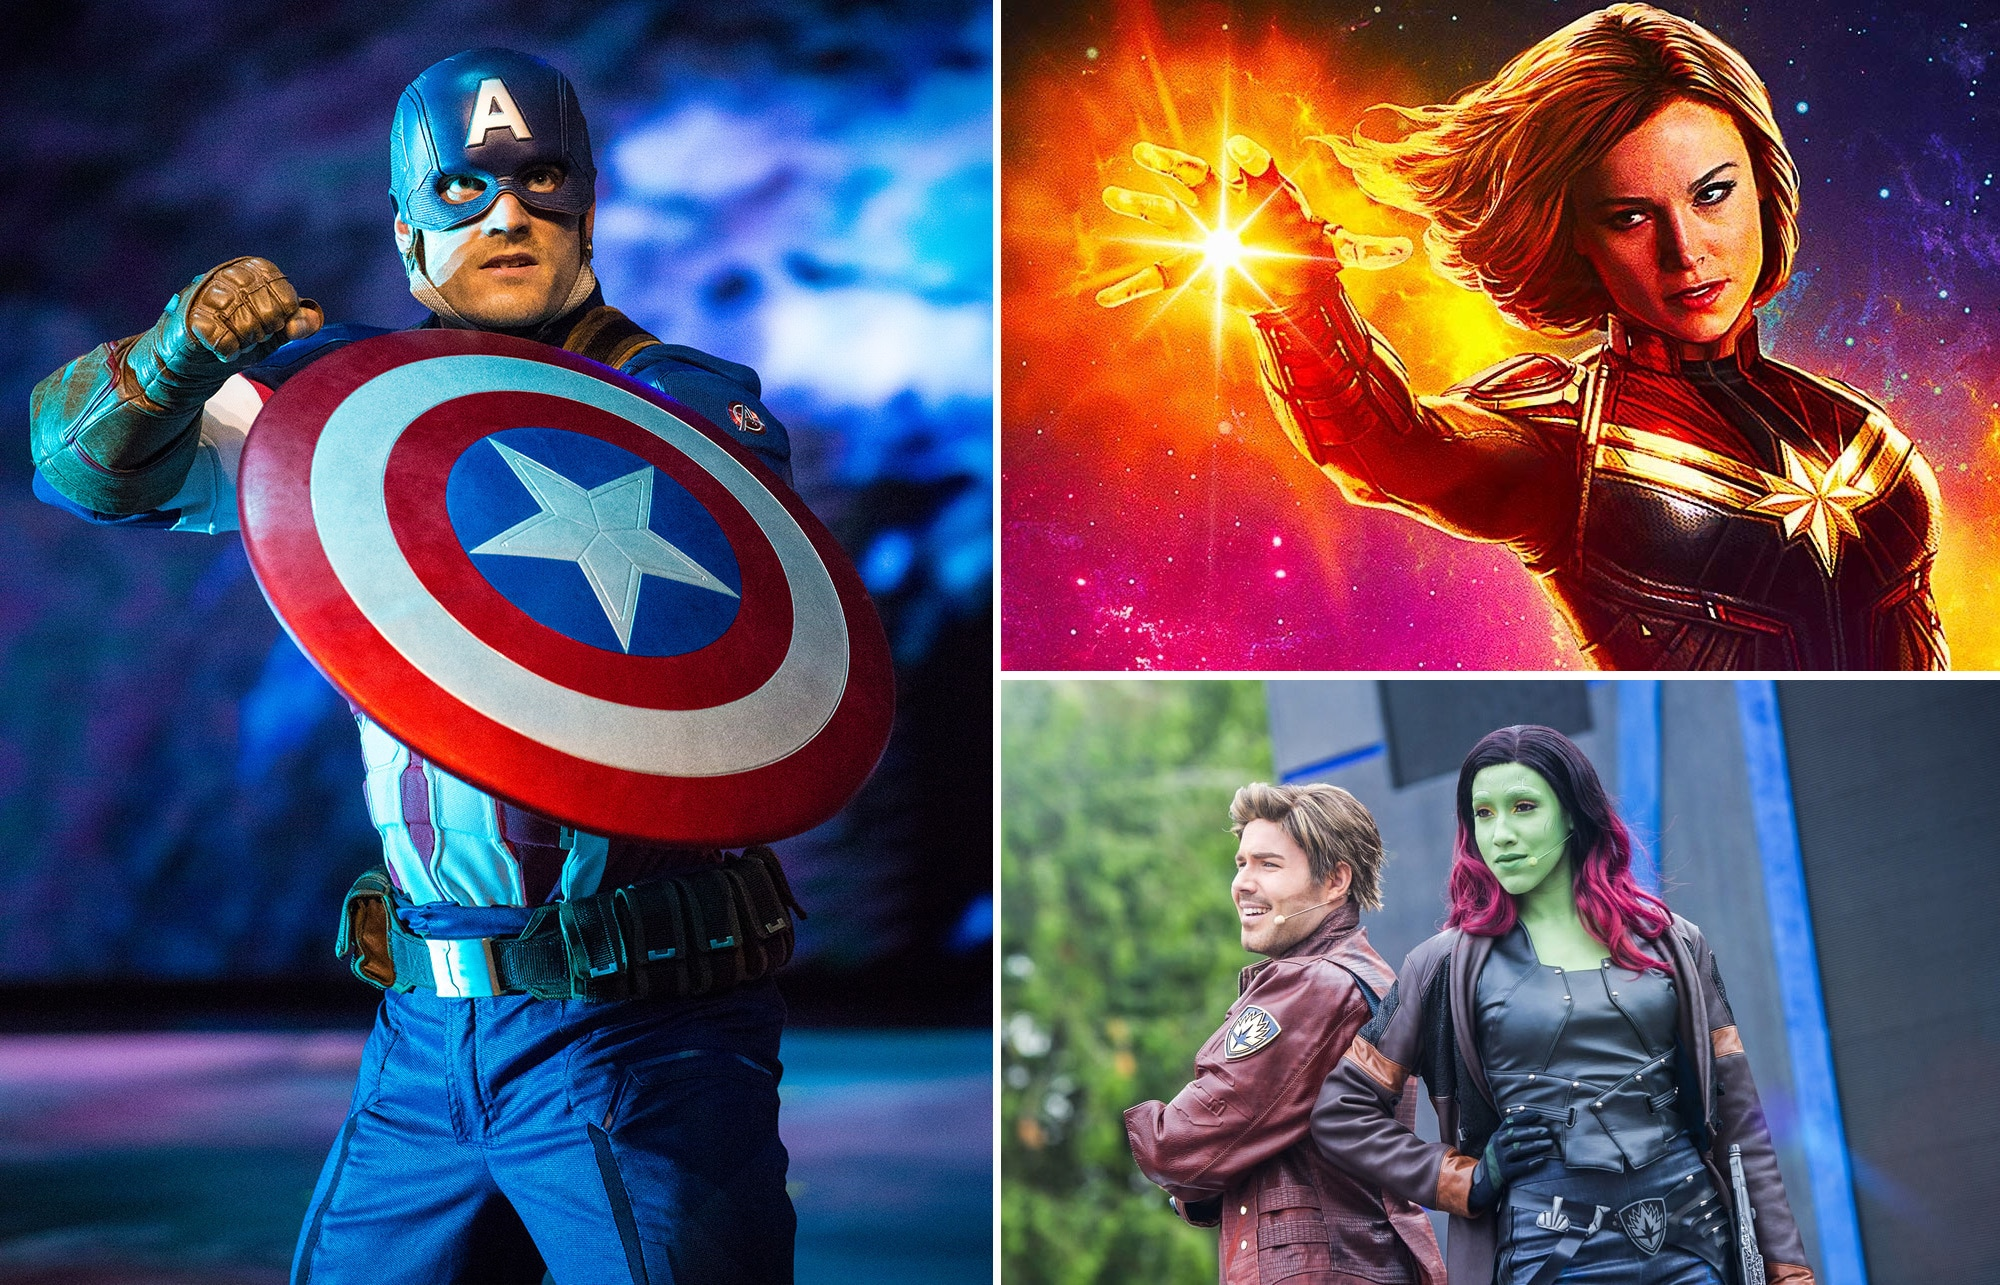 Capitan America, Star-Lord e Gamora a Disneyland Paris